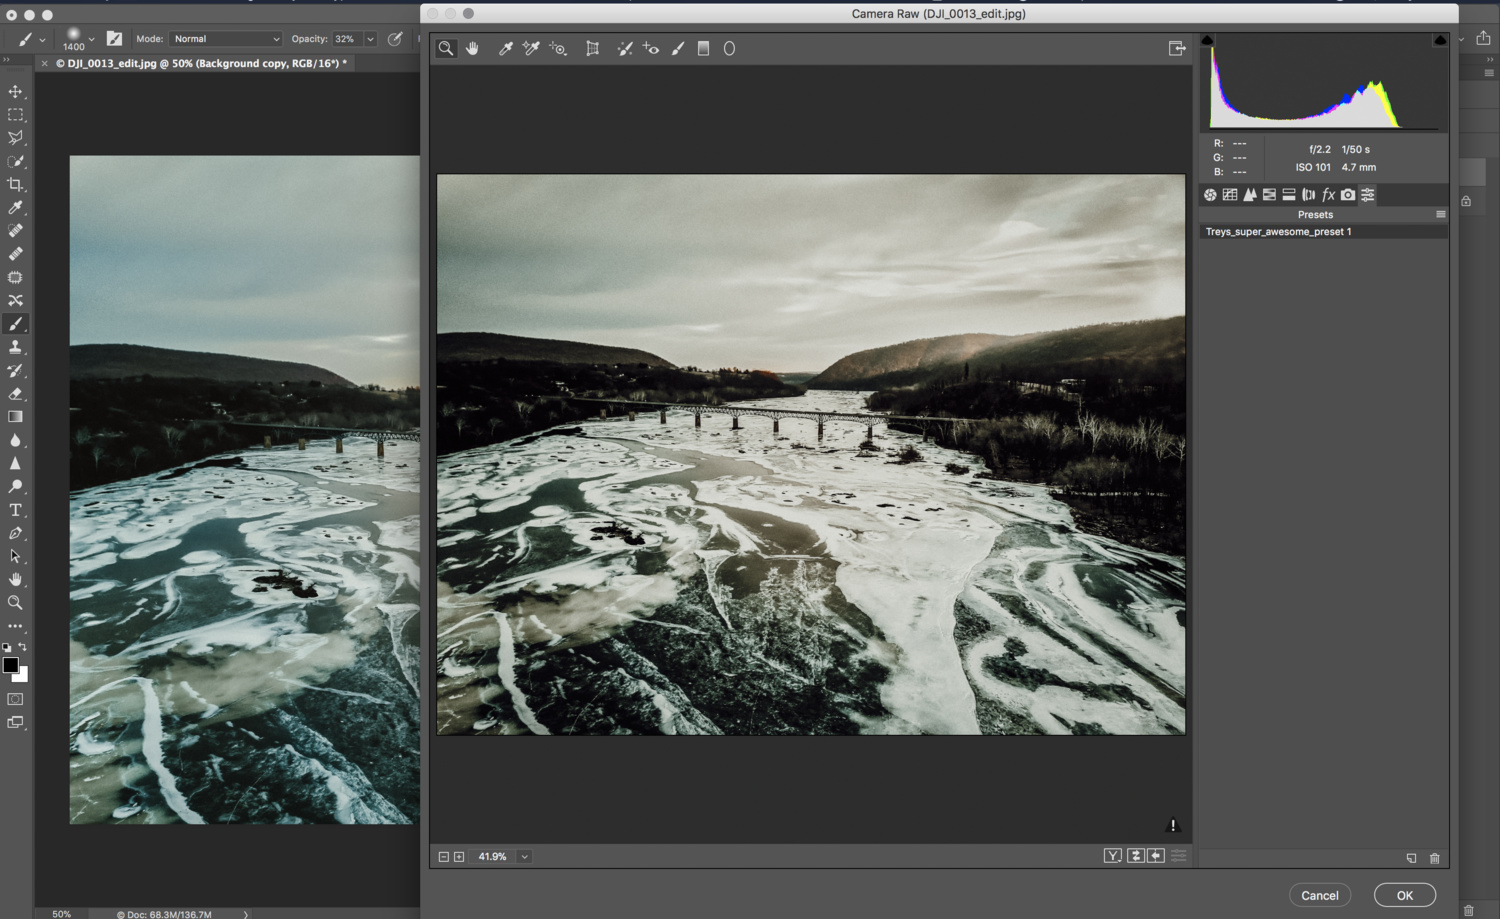 adobe photoshop elements 9 camera raw download